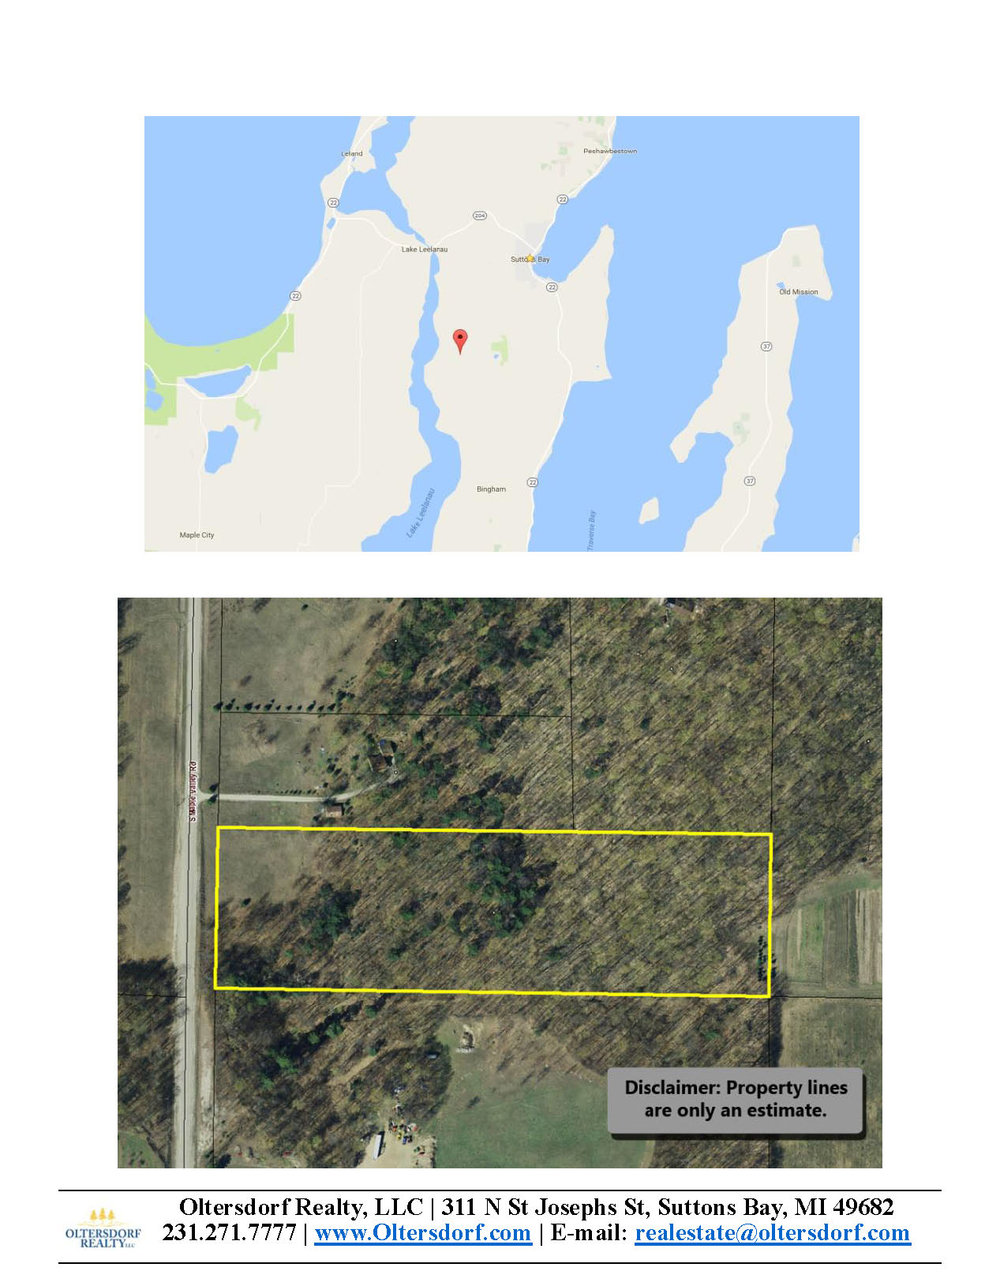 S Maple Valley Road, Suttons Bay, MI – 10.00 Acre Vacant Parcel  for sale by Oltersdorf Realty LLC (7).jpg